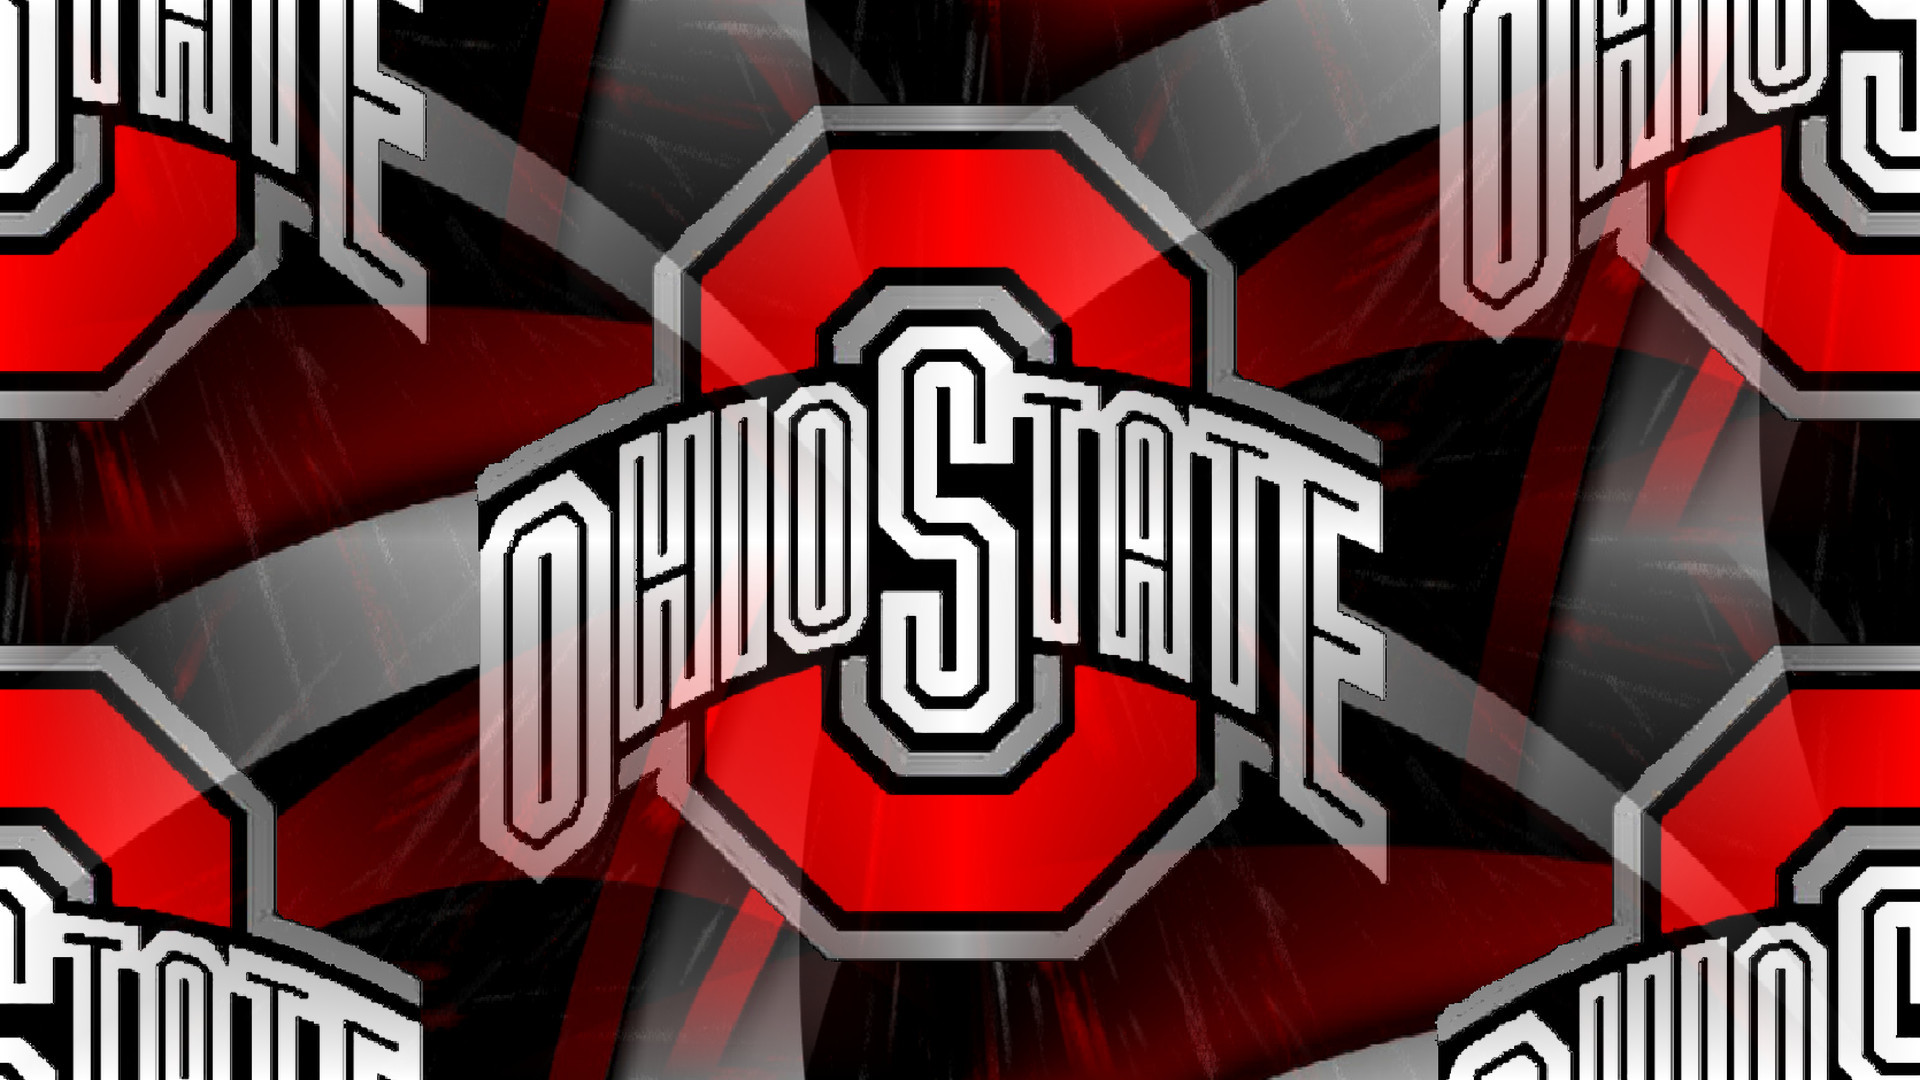 1920x1080 Ohio State Buckeyes images RED BLOCK O WHITE OHIO STATE ON AN ABSTRACT HD  wallpaper and background photos